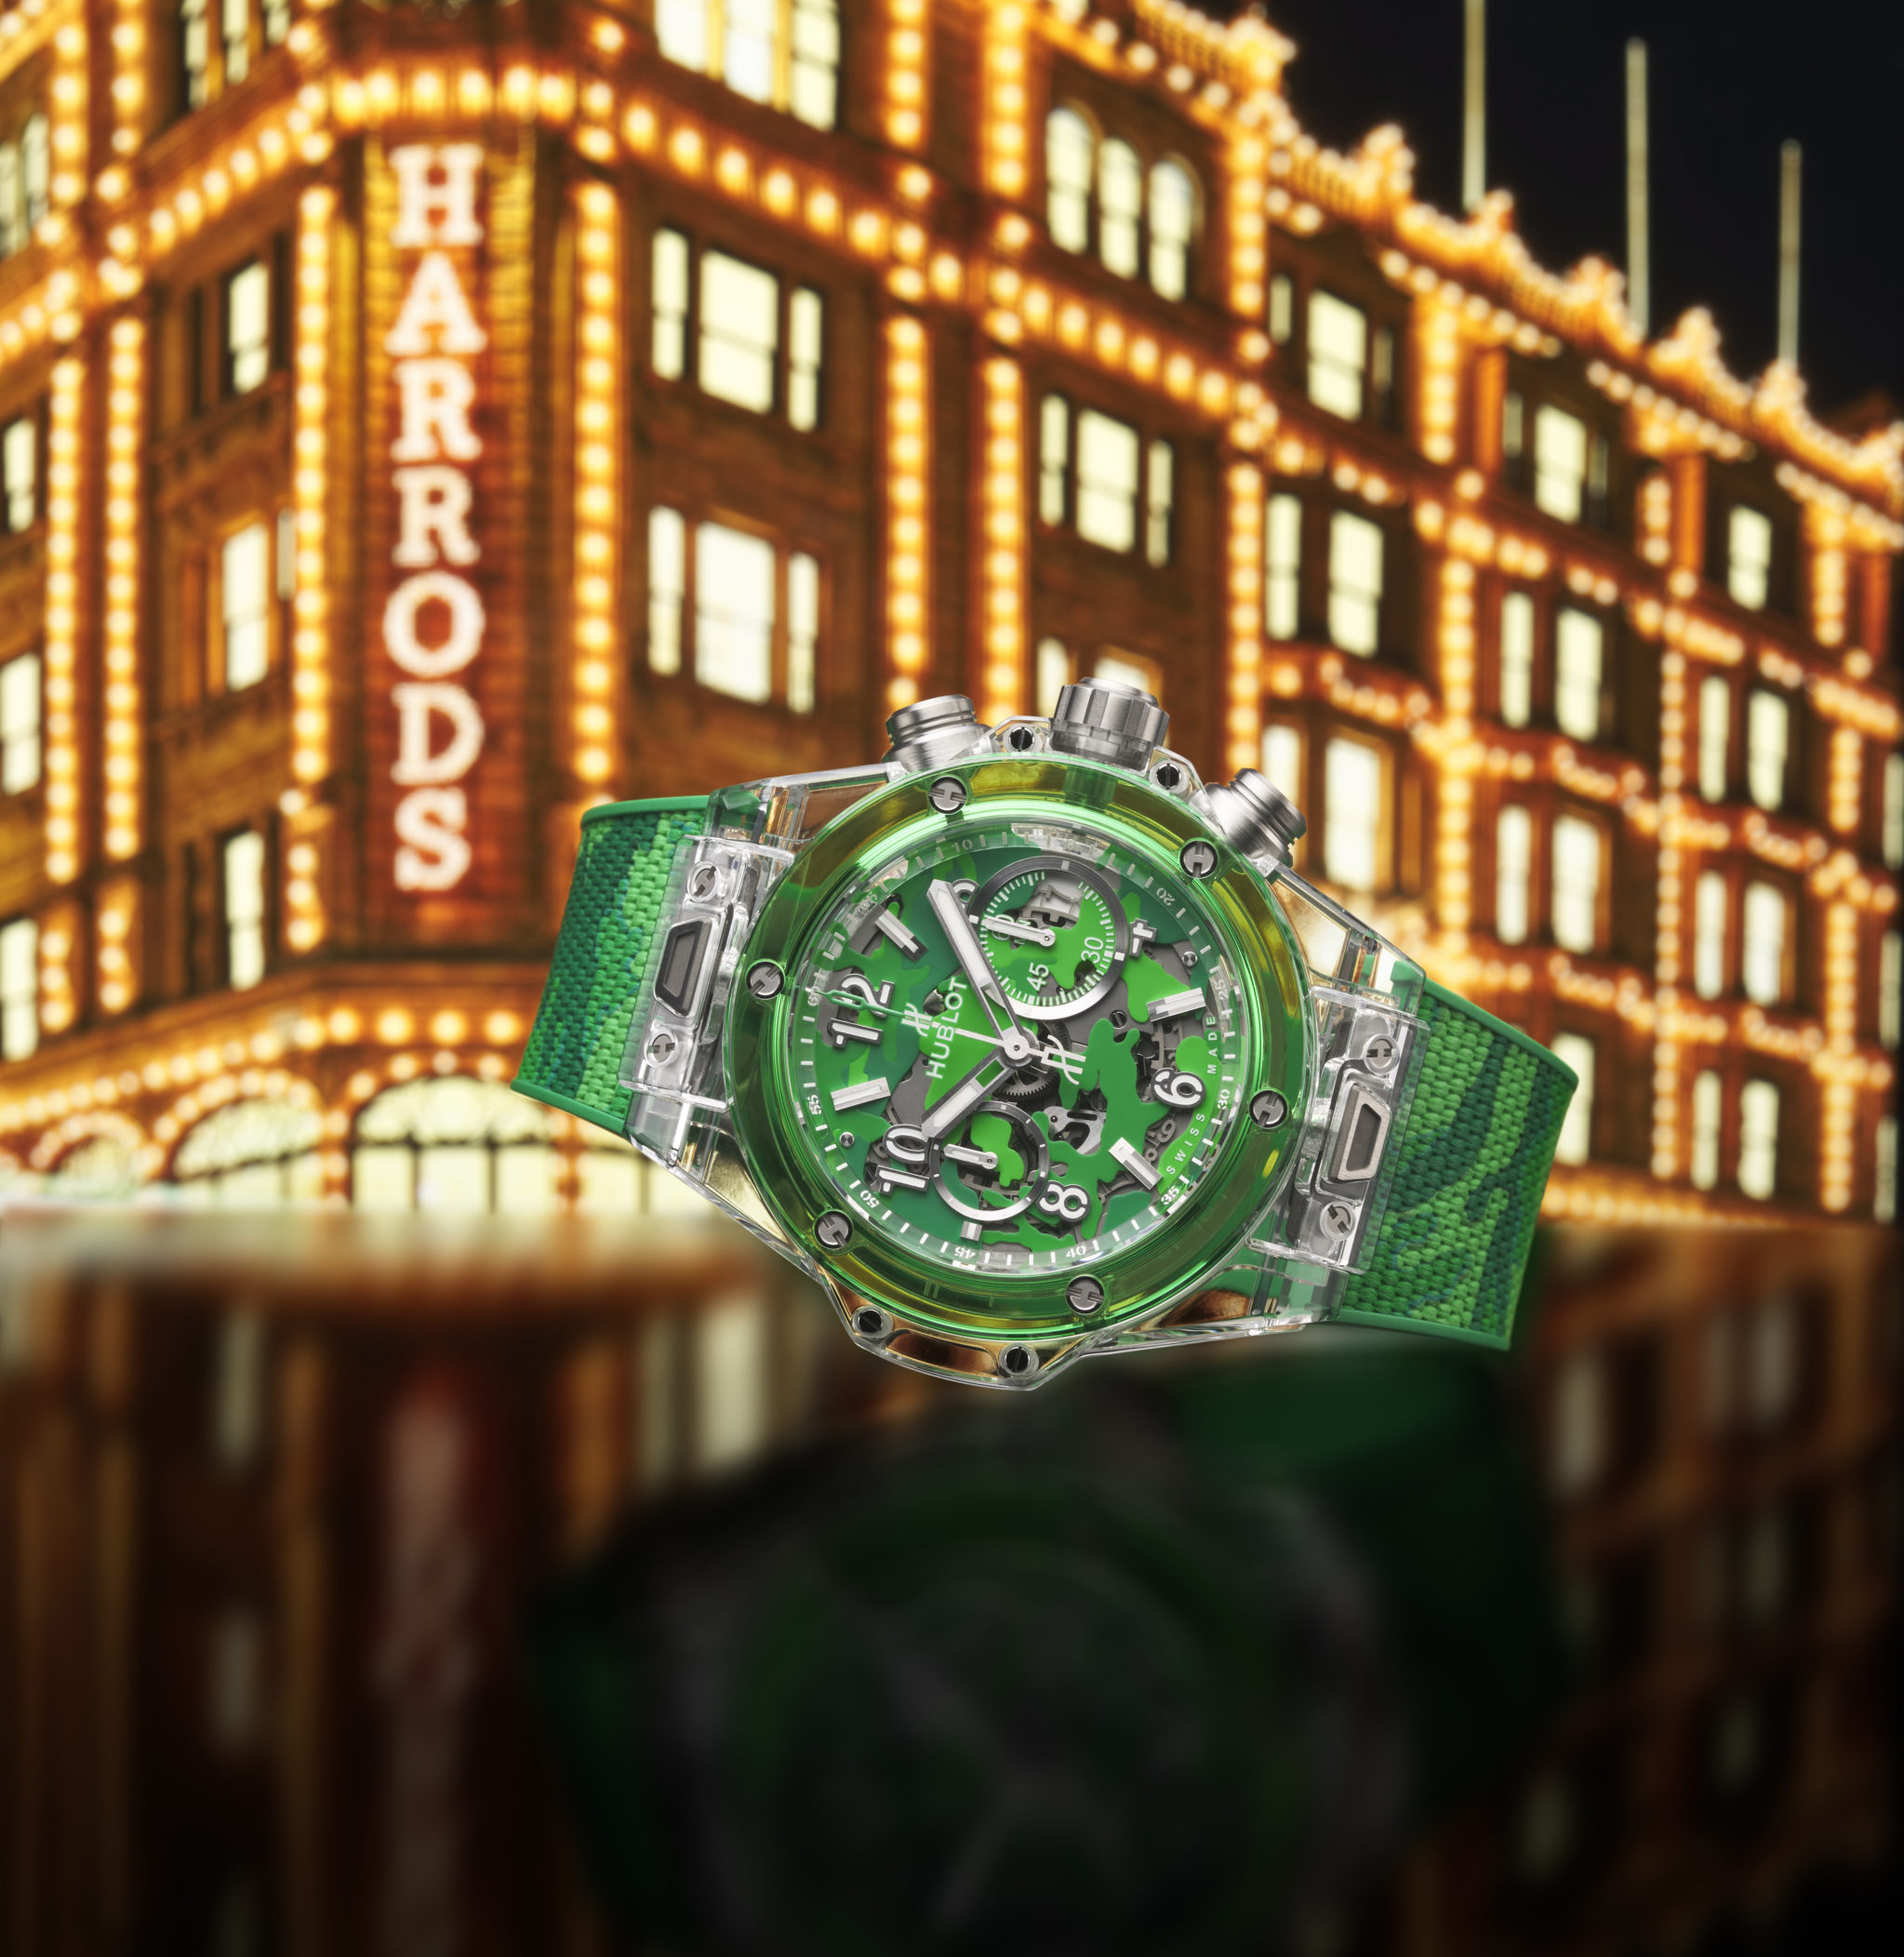 New Release: Hublot's Big Bang Unico Sapphire Harrods Special Edition